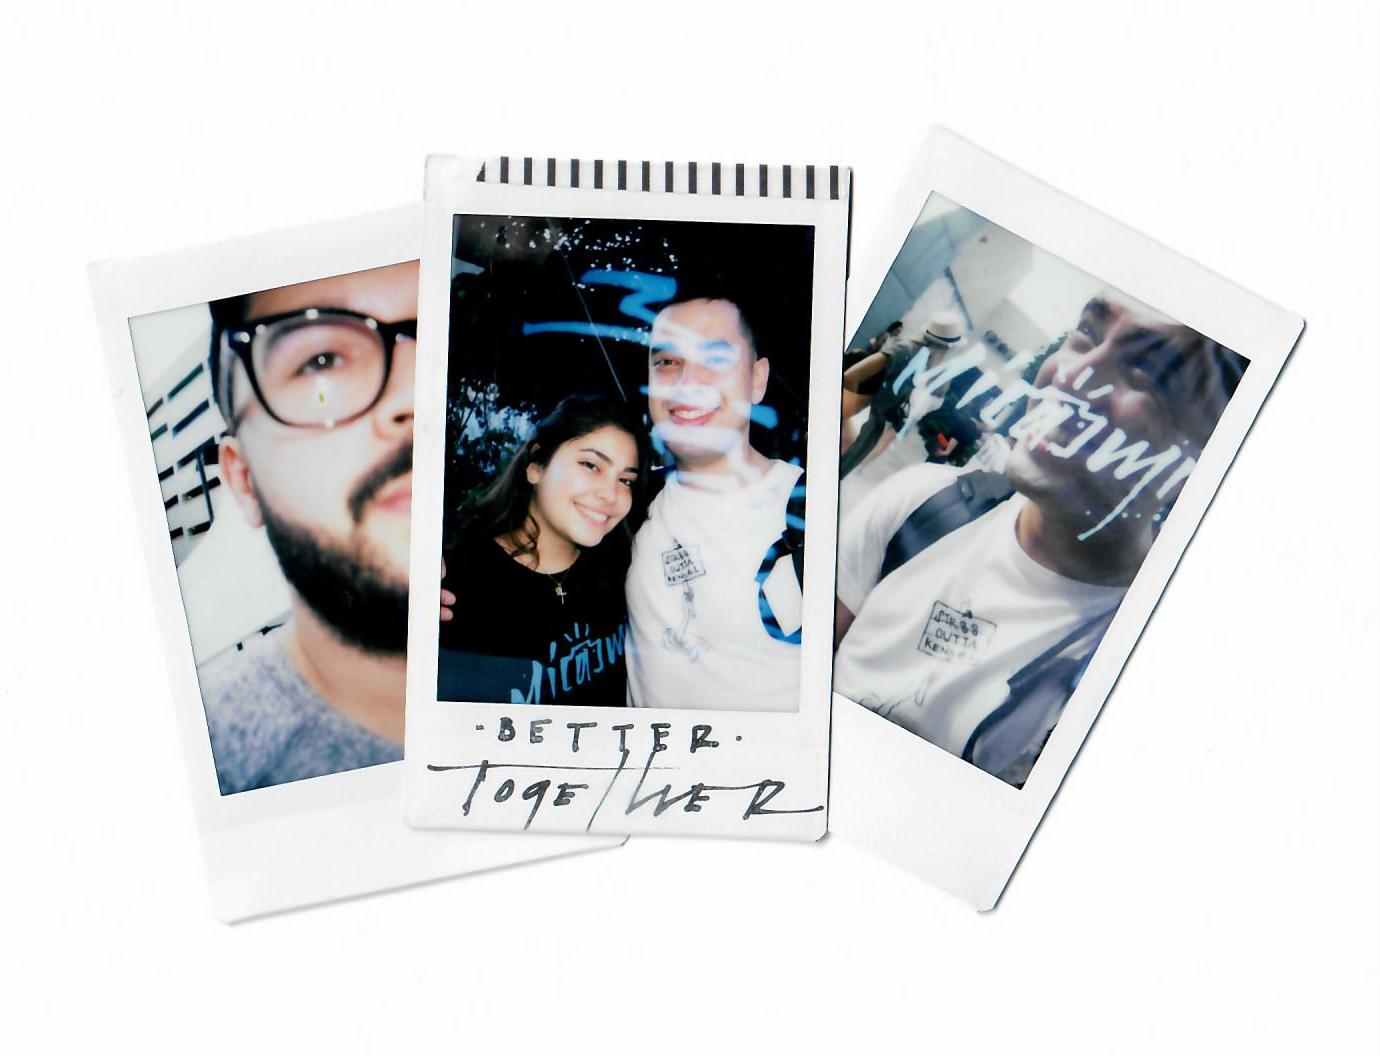 Polaroids by Camilo Rojas, Co-Founder of Shoot My Travel